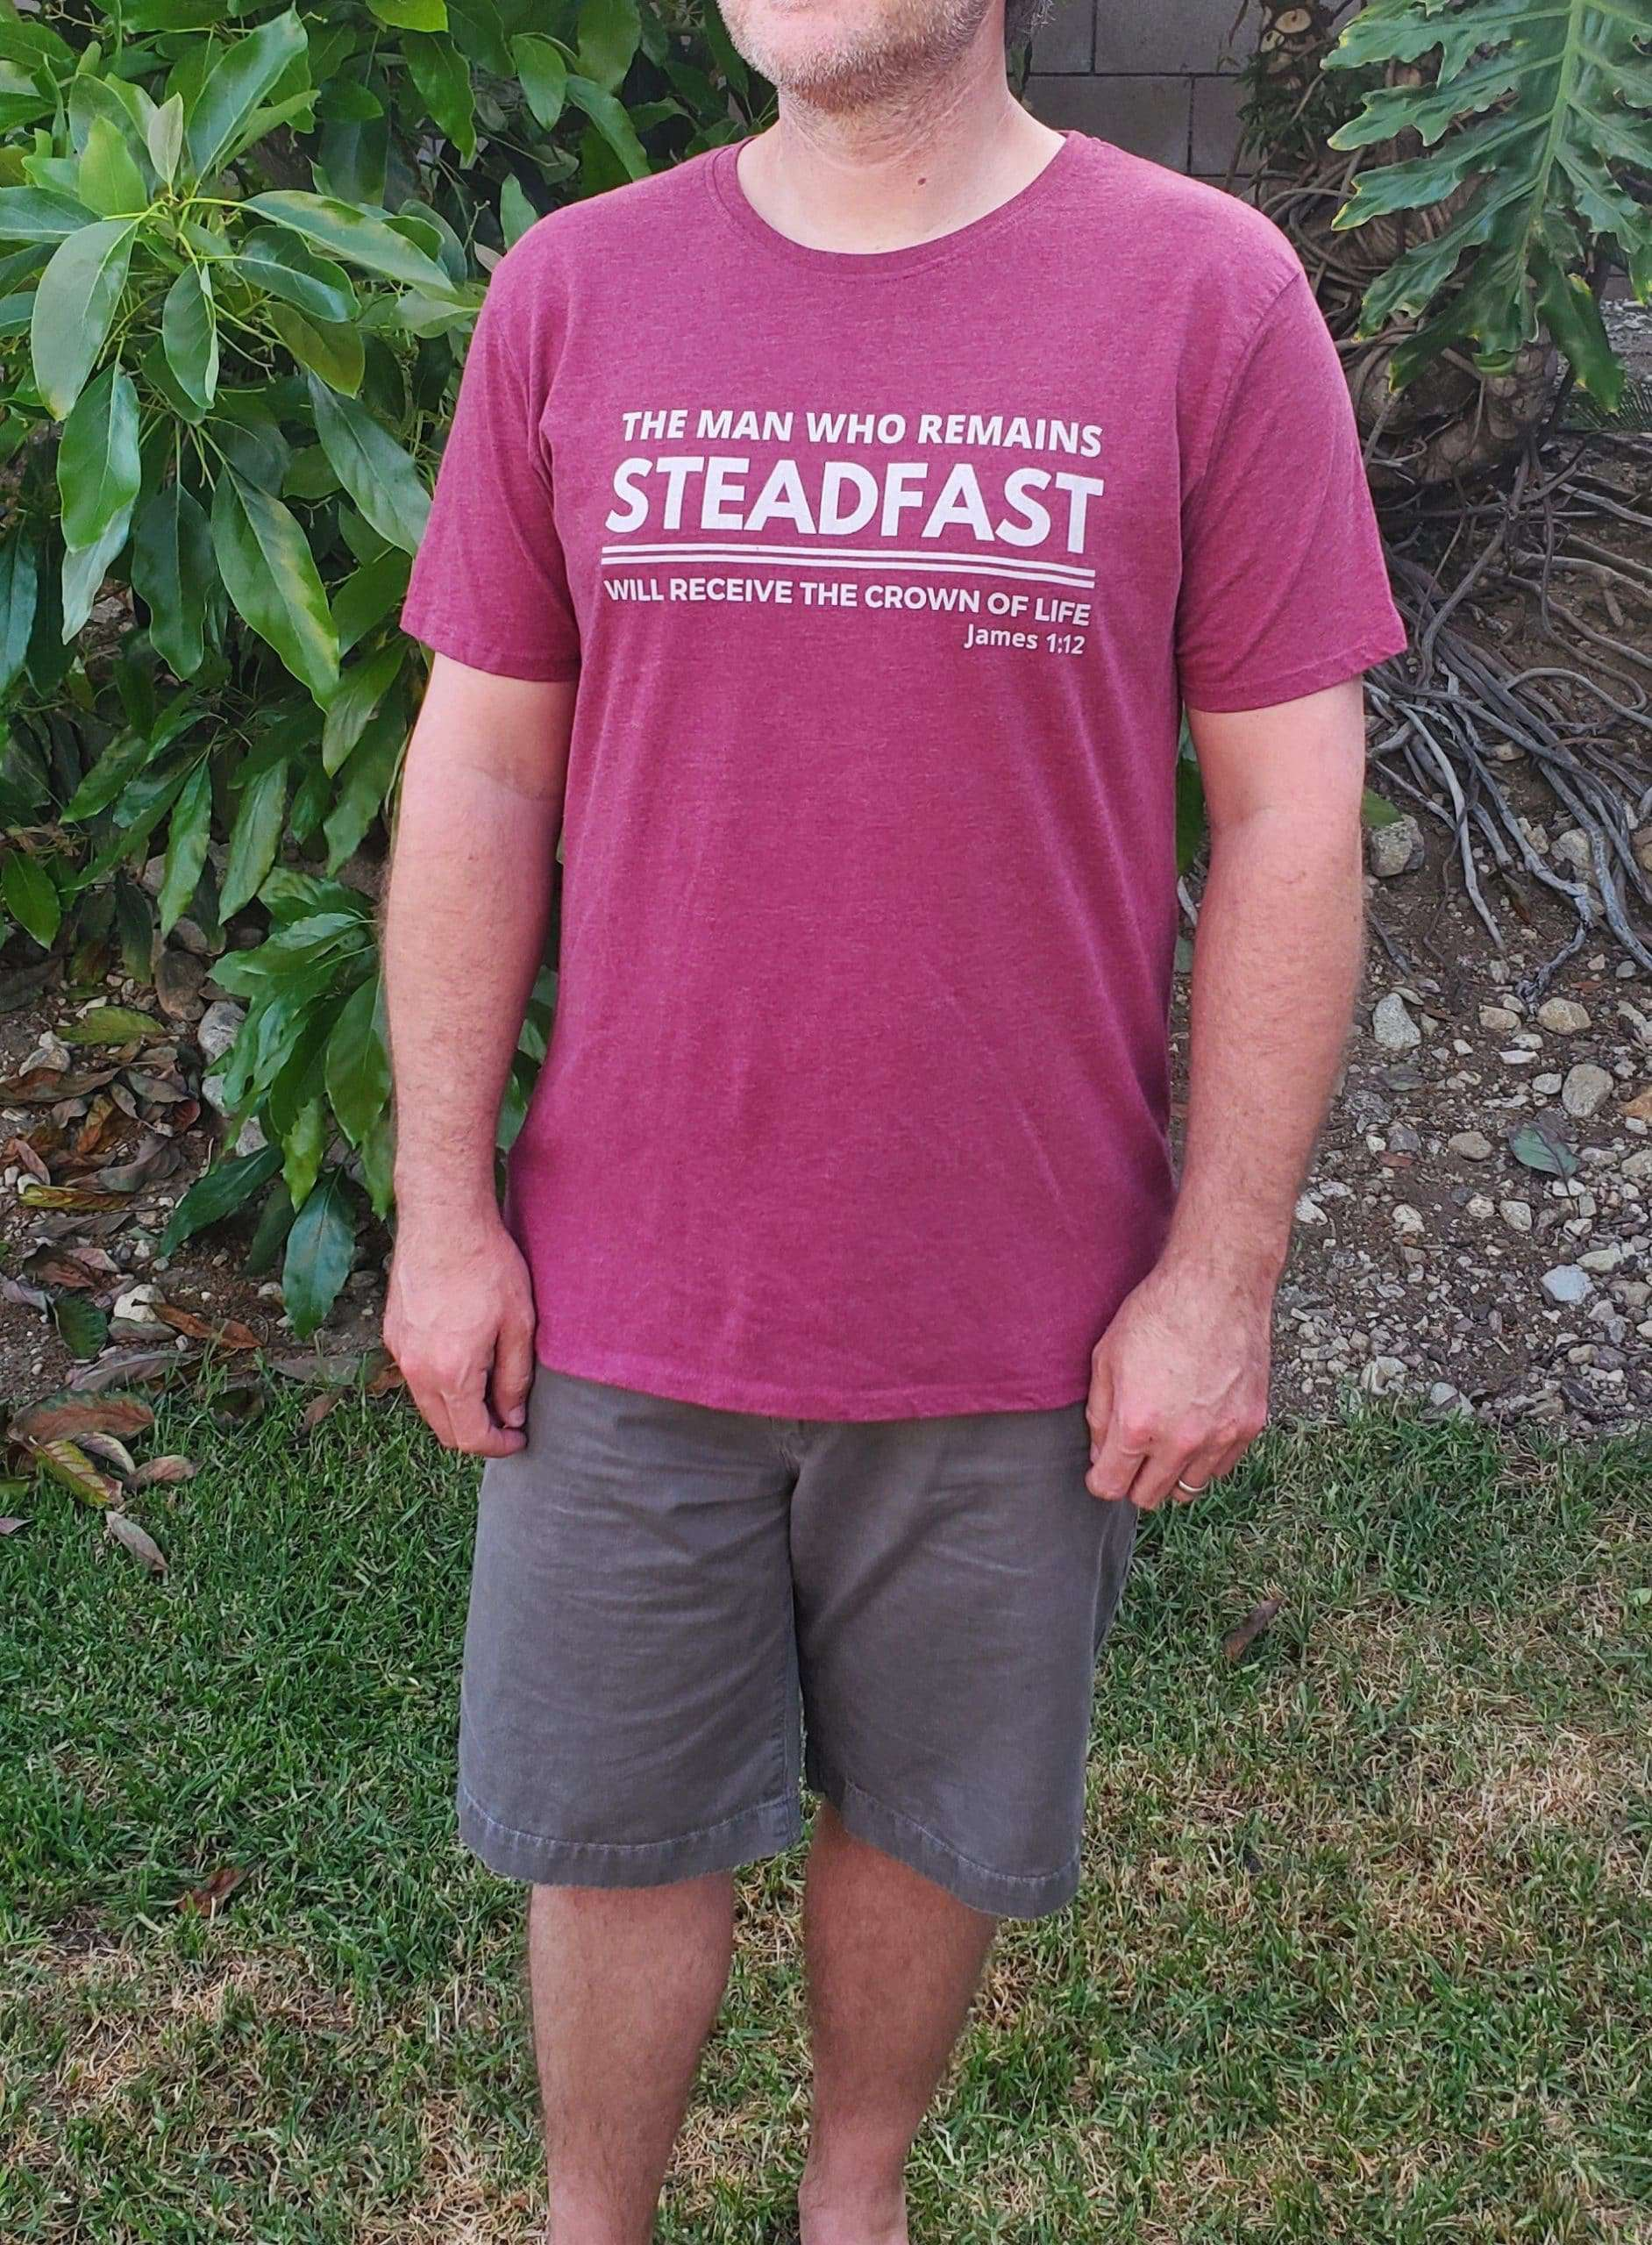 Steadfast Christian clothing for men